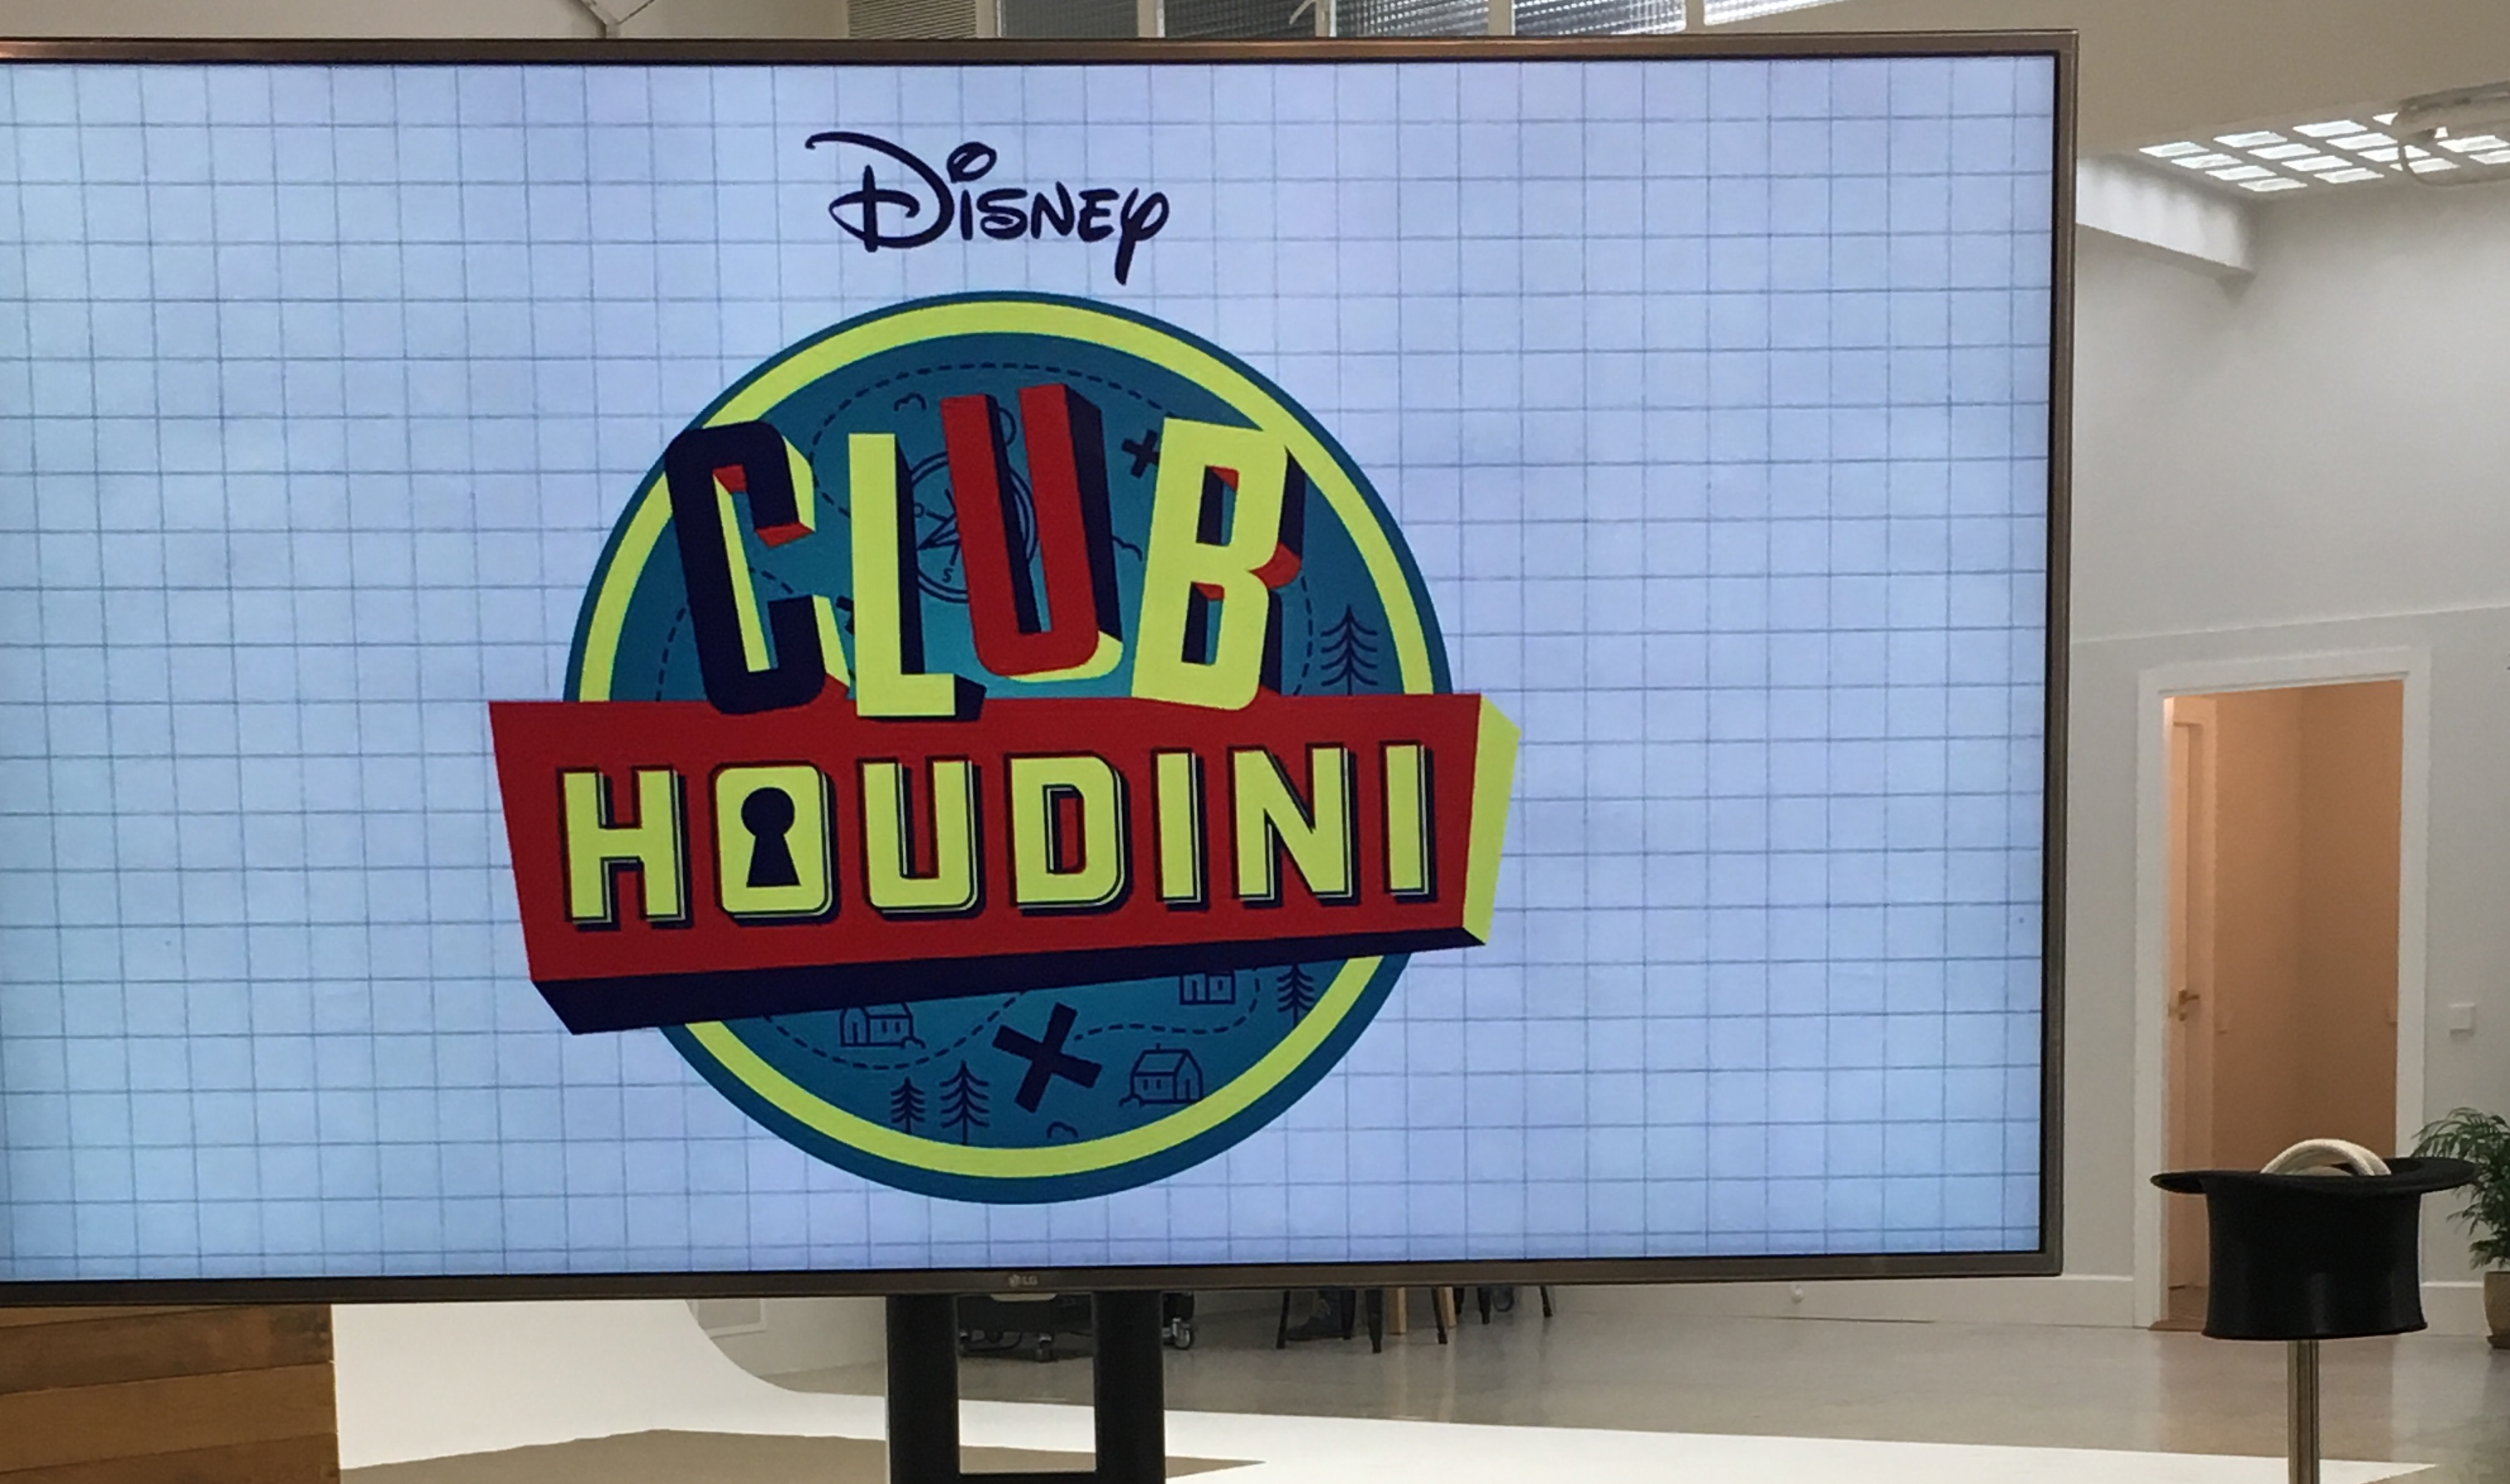 Club Houdini Disney Channel